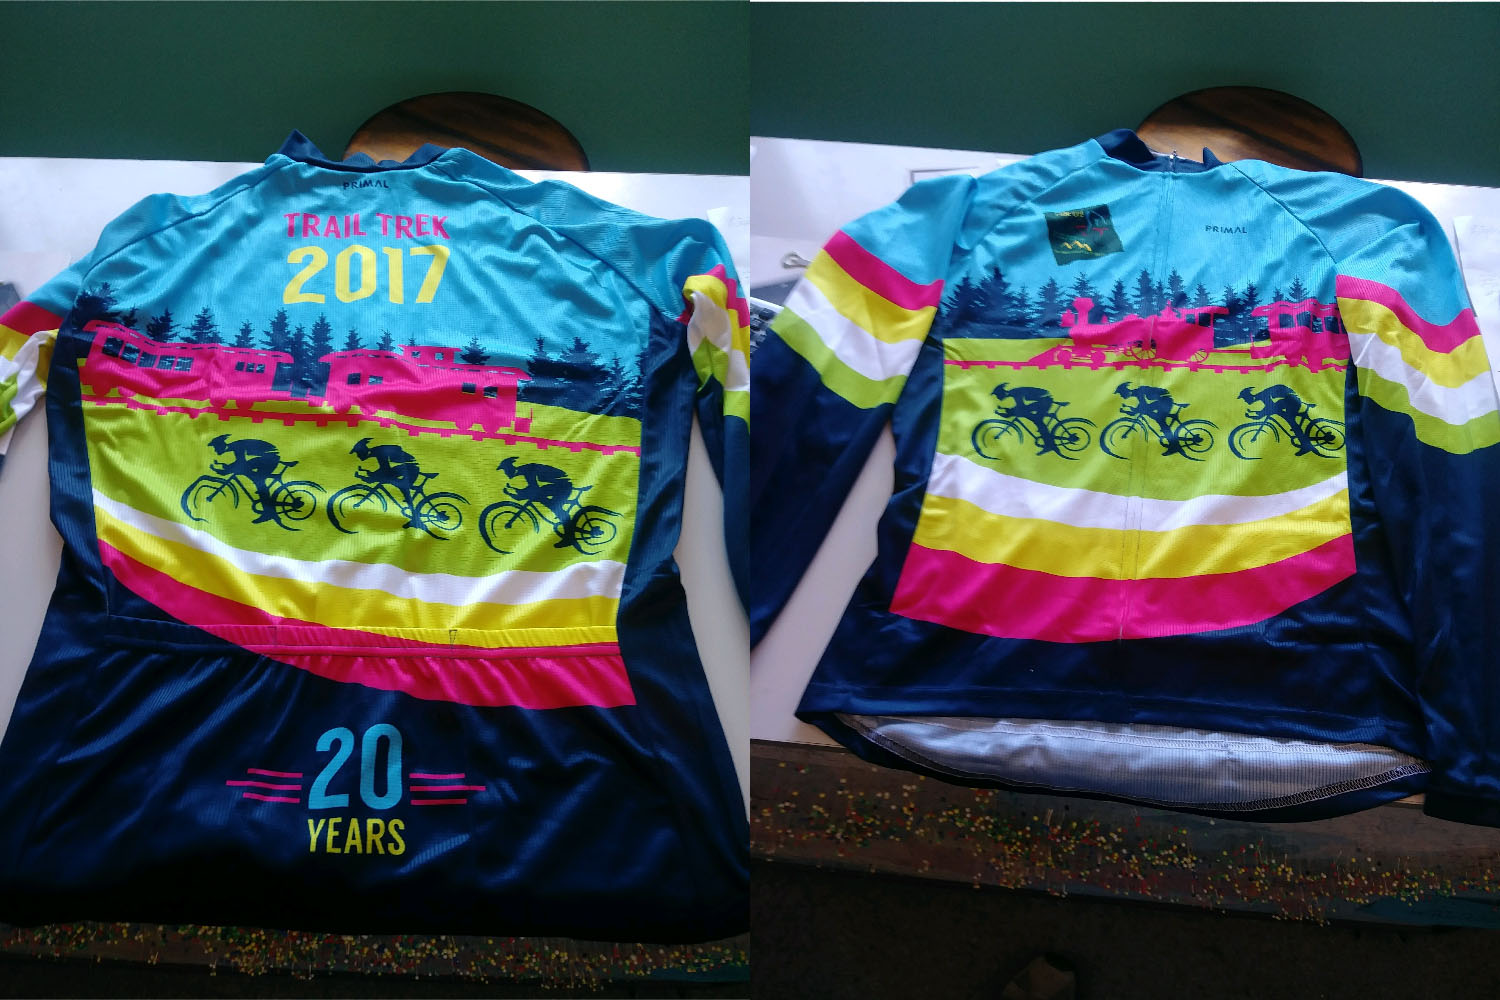 Long-Sleeved Blue & Pink Jersey